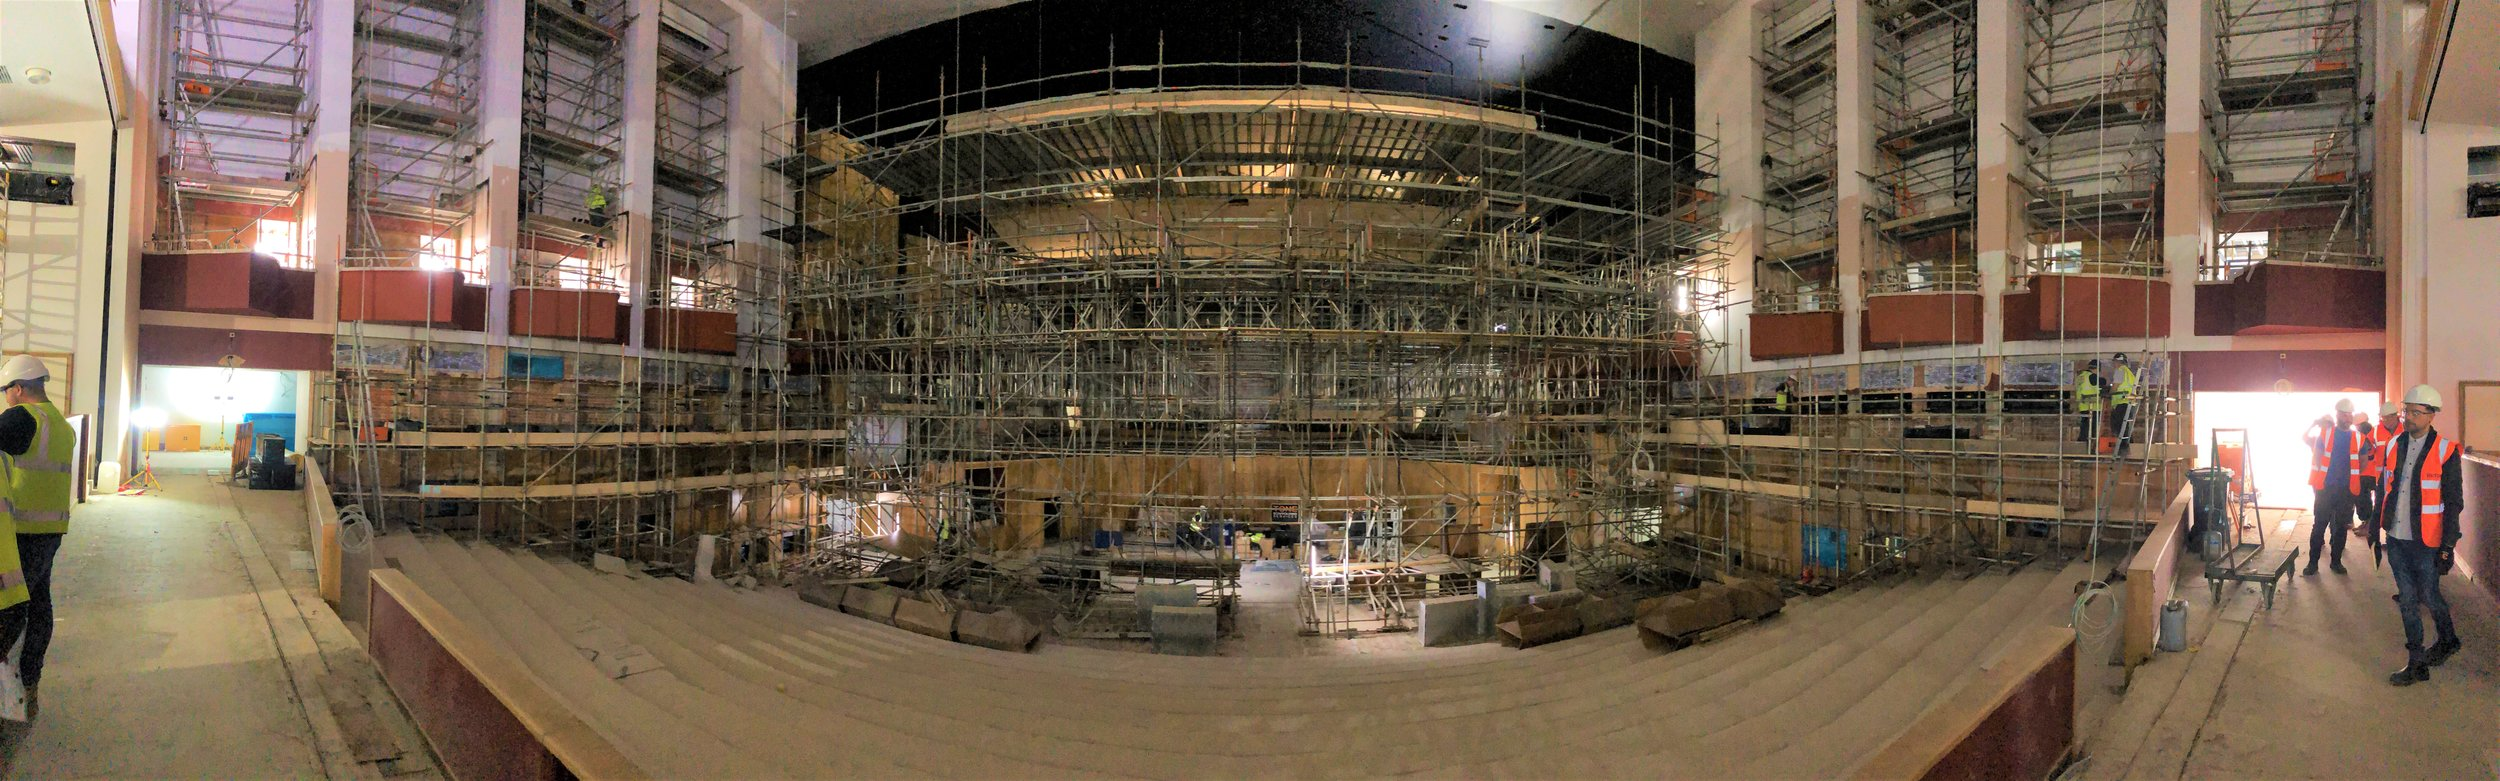 The Phoenix Concert Hall is quite a space! And it's slowly being revealed in all its glory from behind the scaffolding.